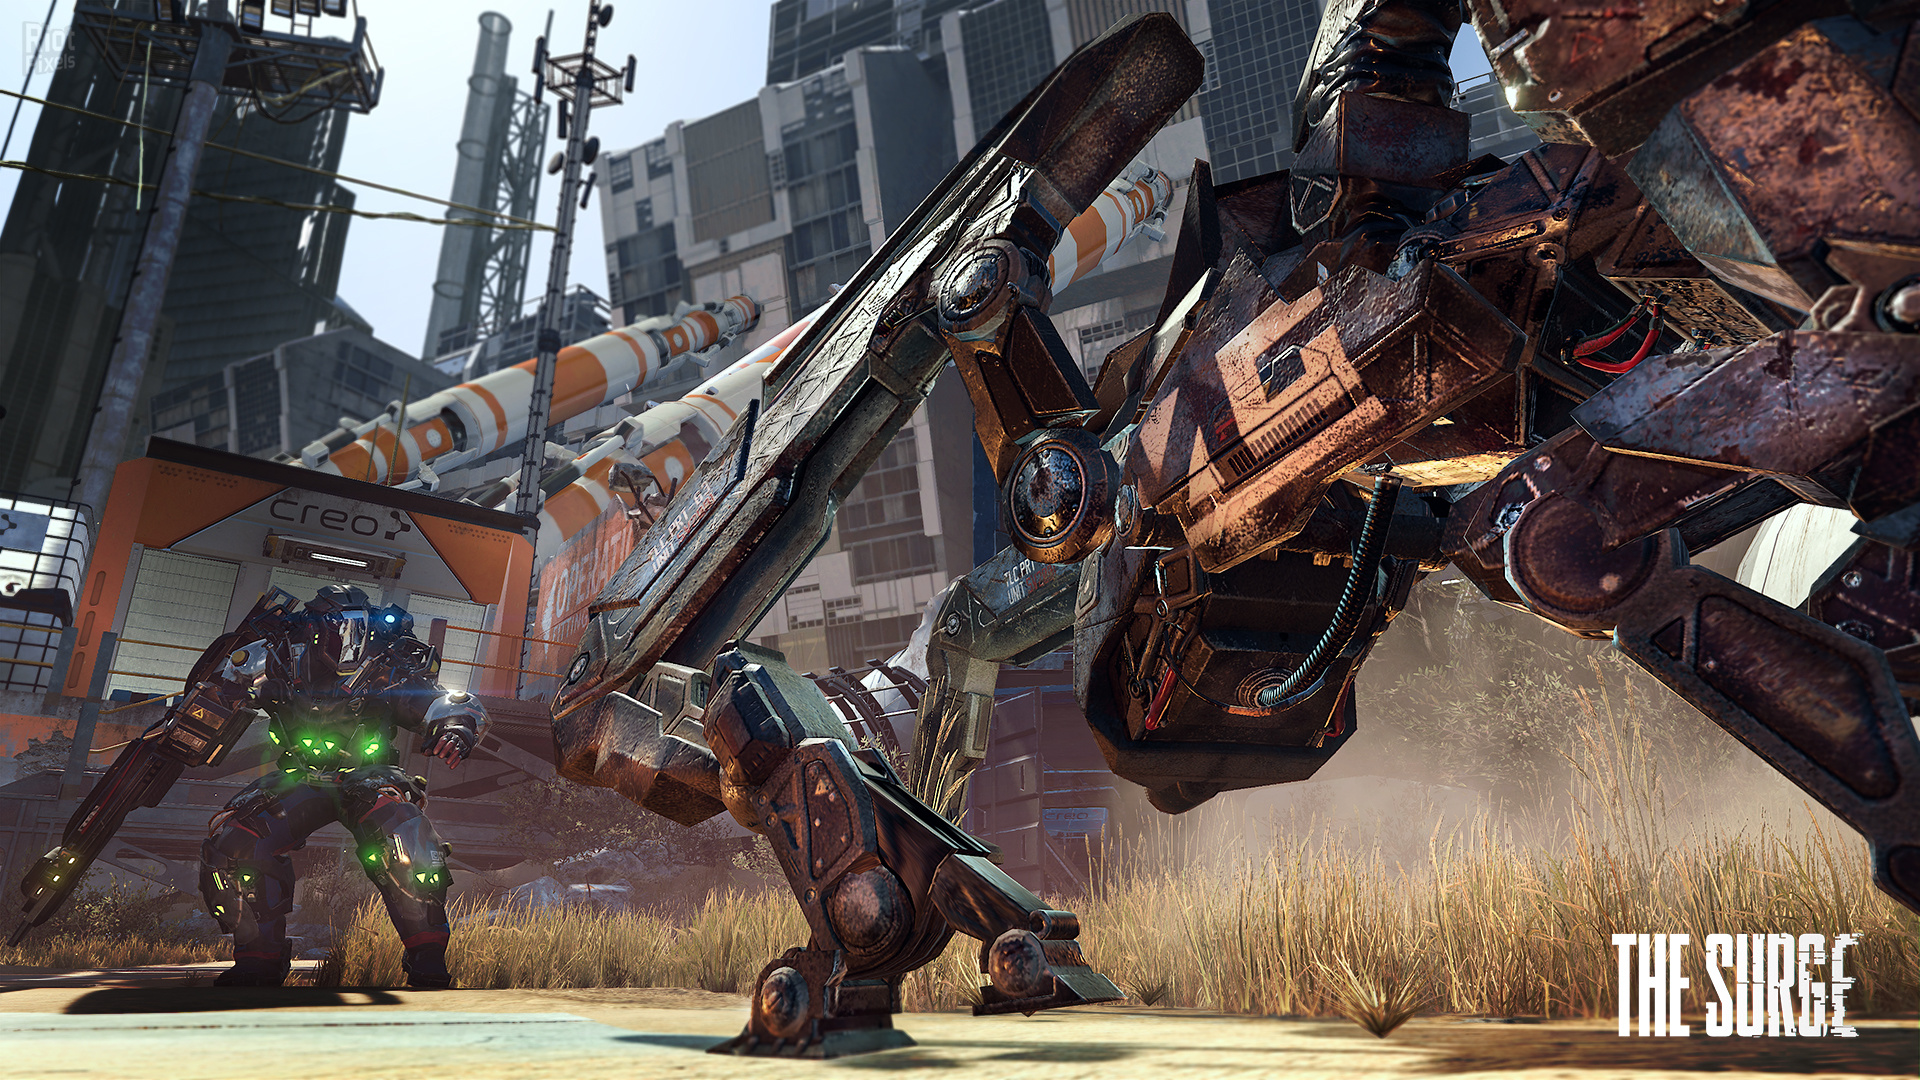 The Surge Complete Edition,Edition,Surge,Complete,ريباك,Fitgirl,The Surge A Walk in the Park,العاب,مغامرة,اكشن,كاملة,games,repack,action,adventure